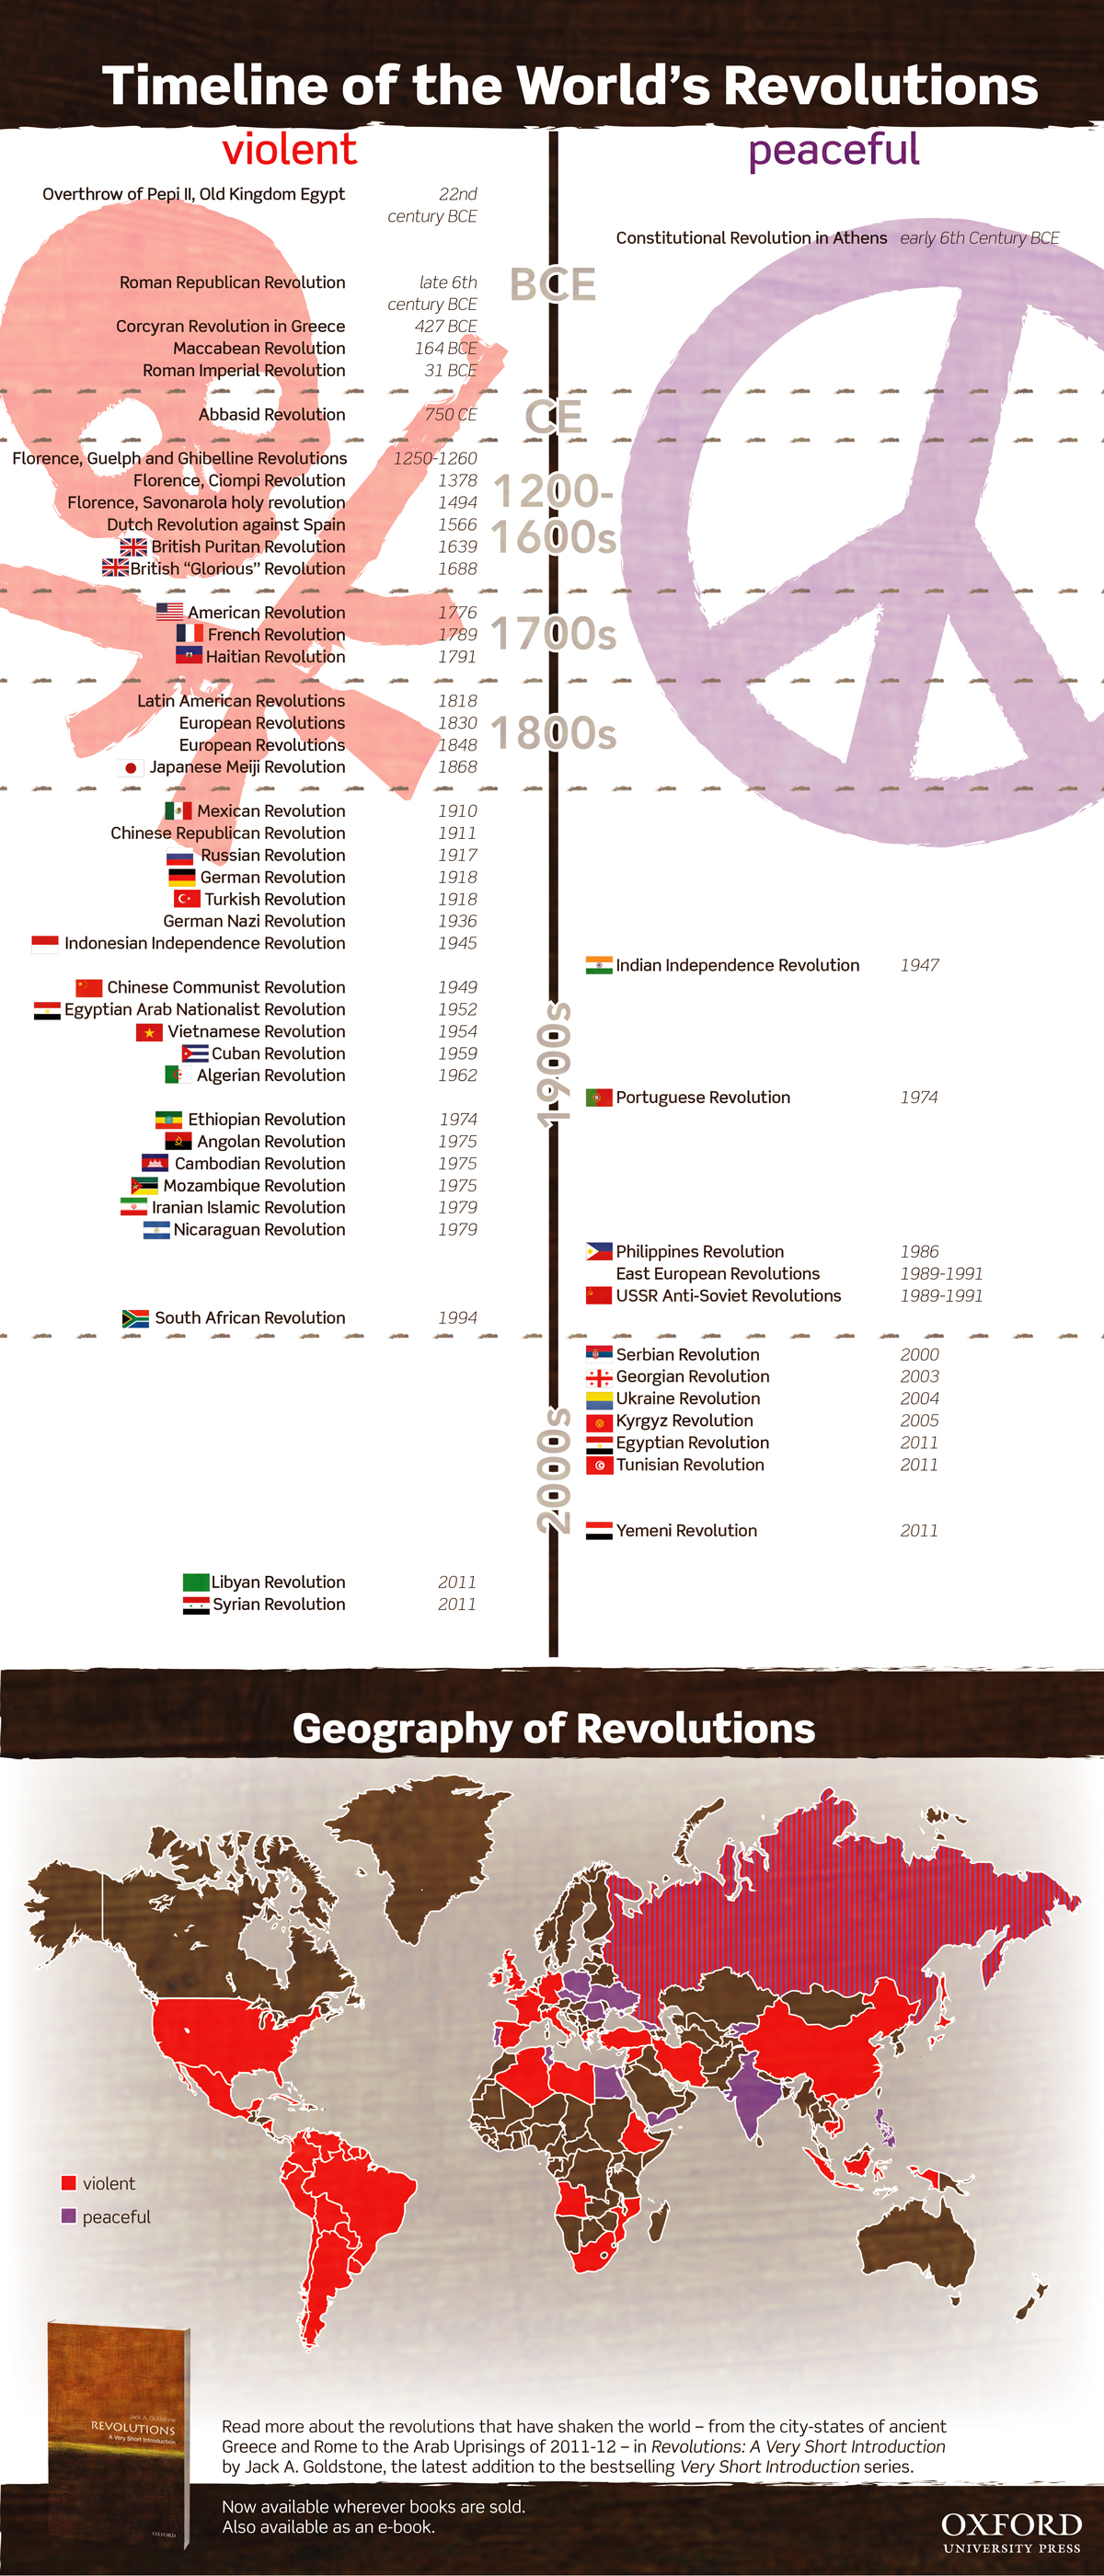 Revolutions Timeline and Map